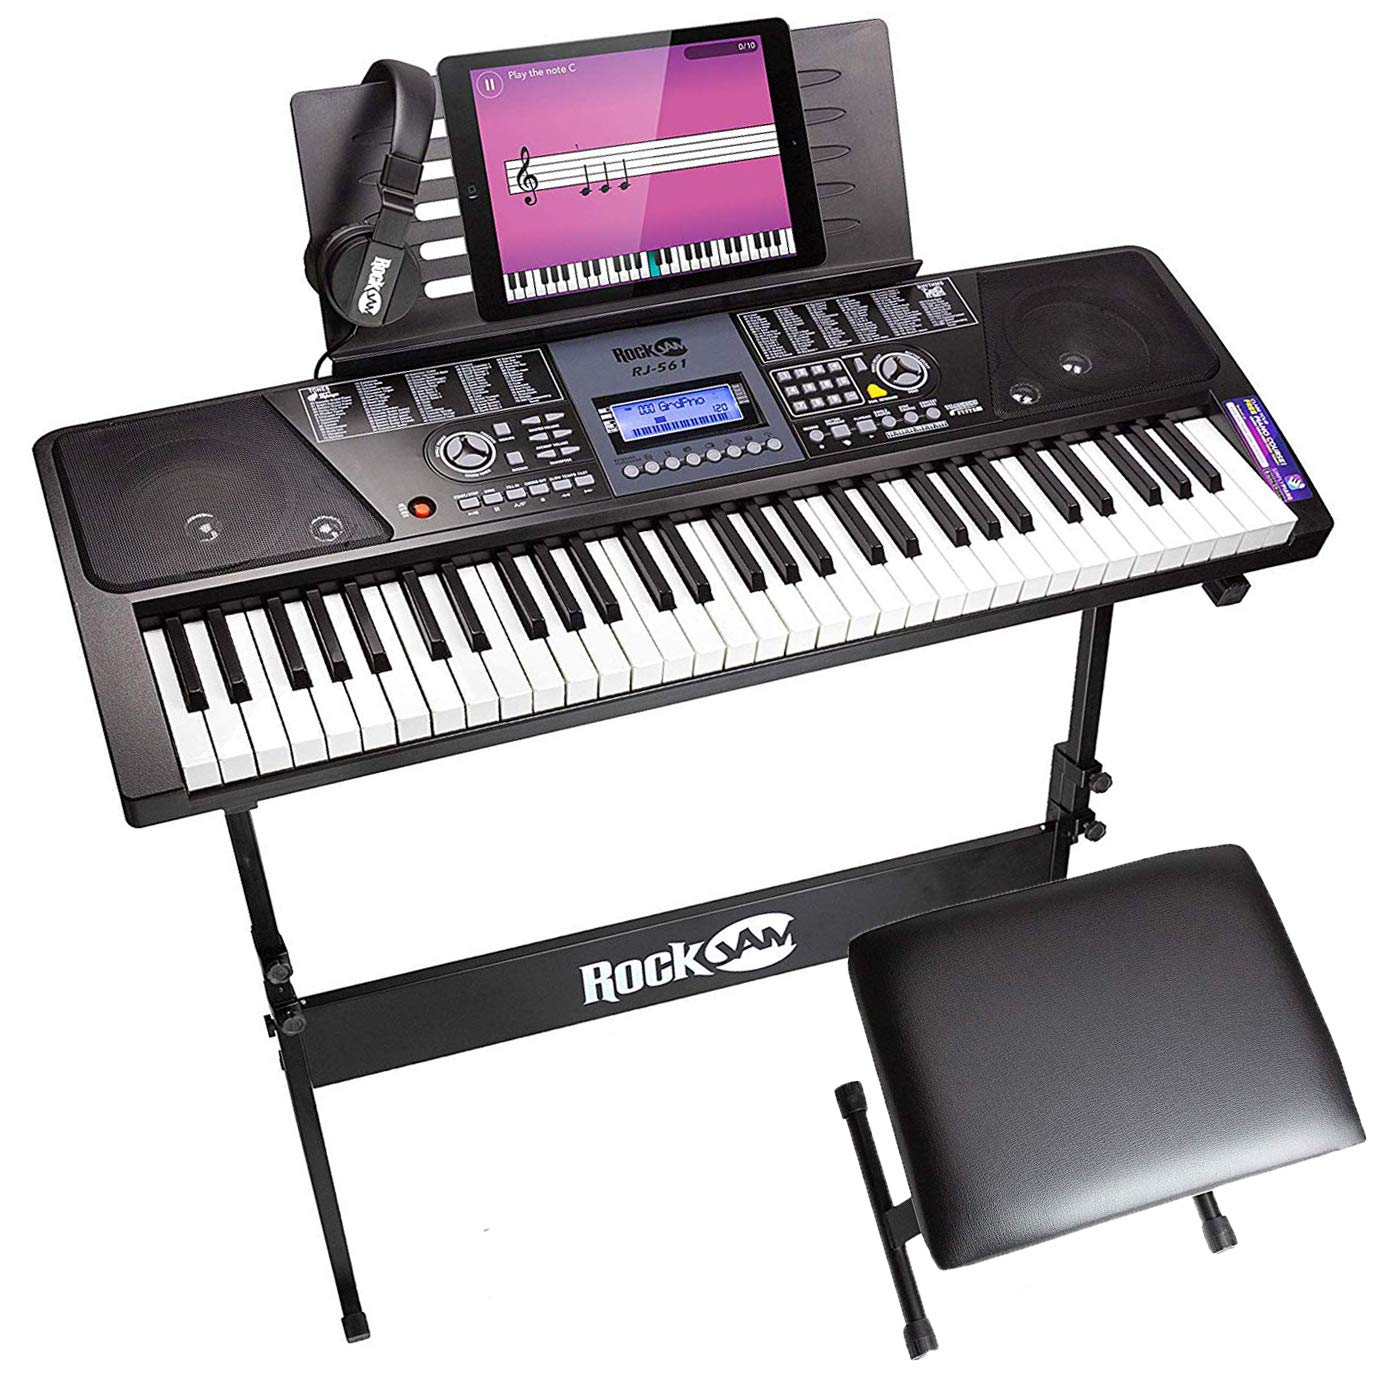 RockJam RJ561 61-Keys Electronic Keyboard SuperKit (Black) product image